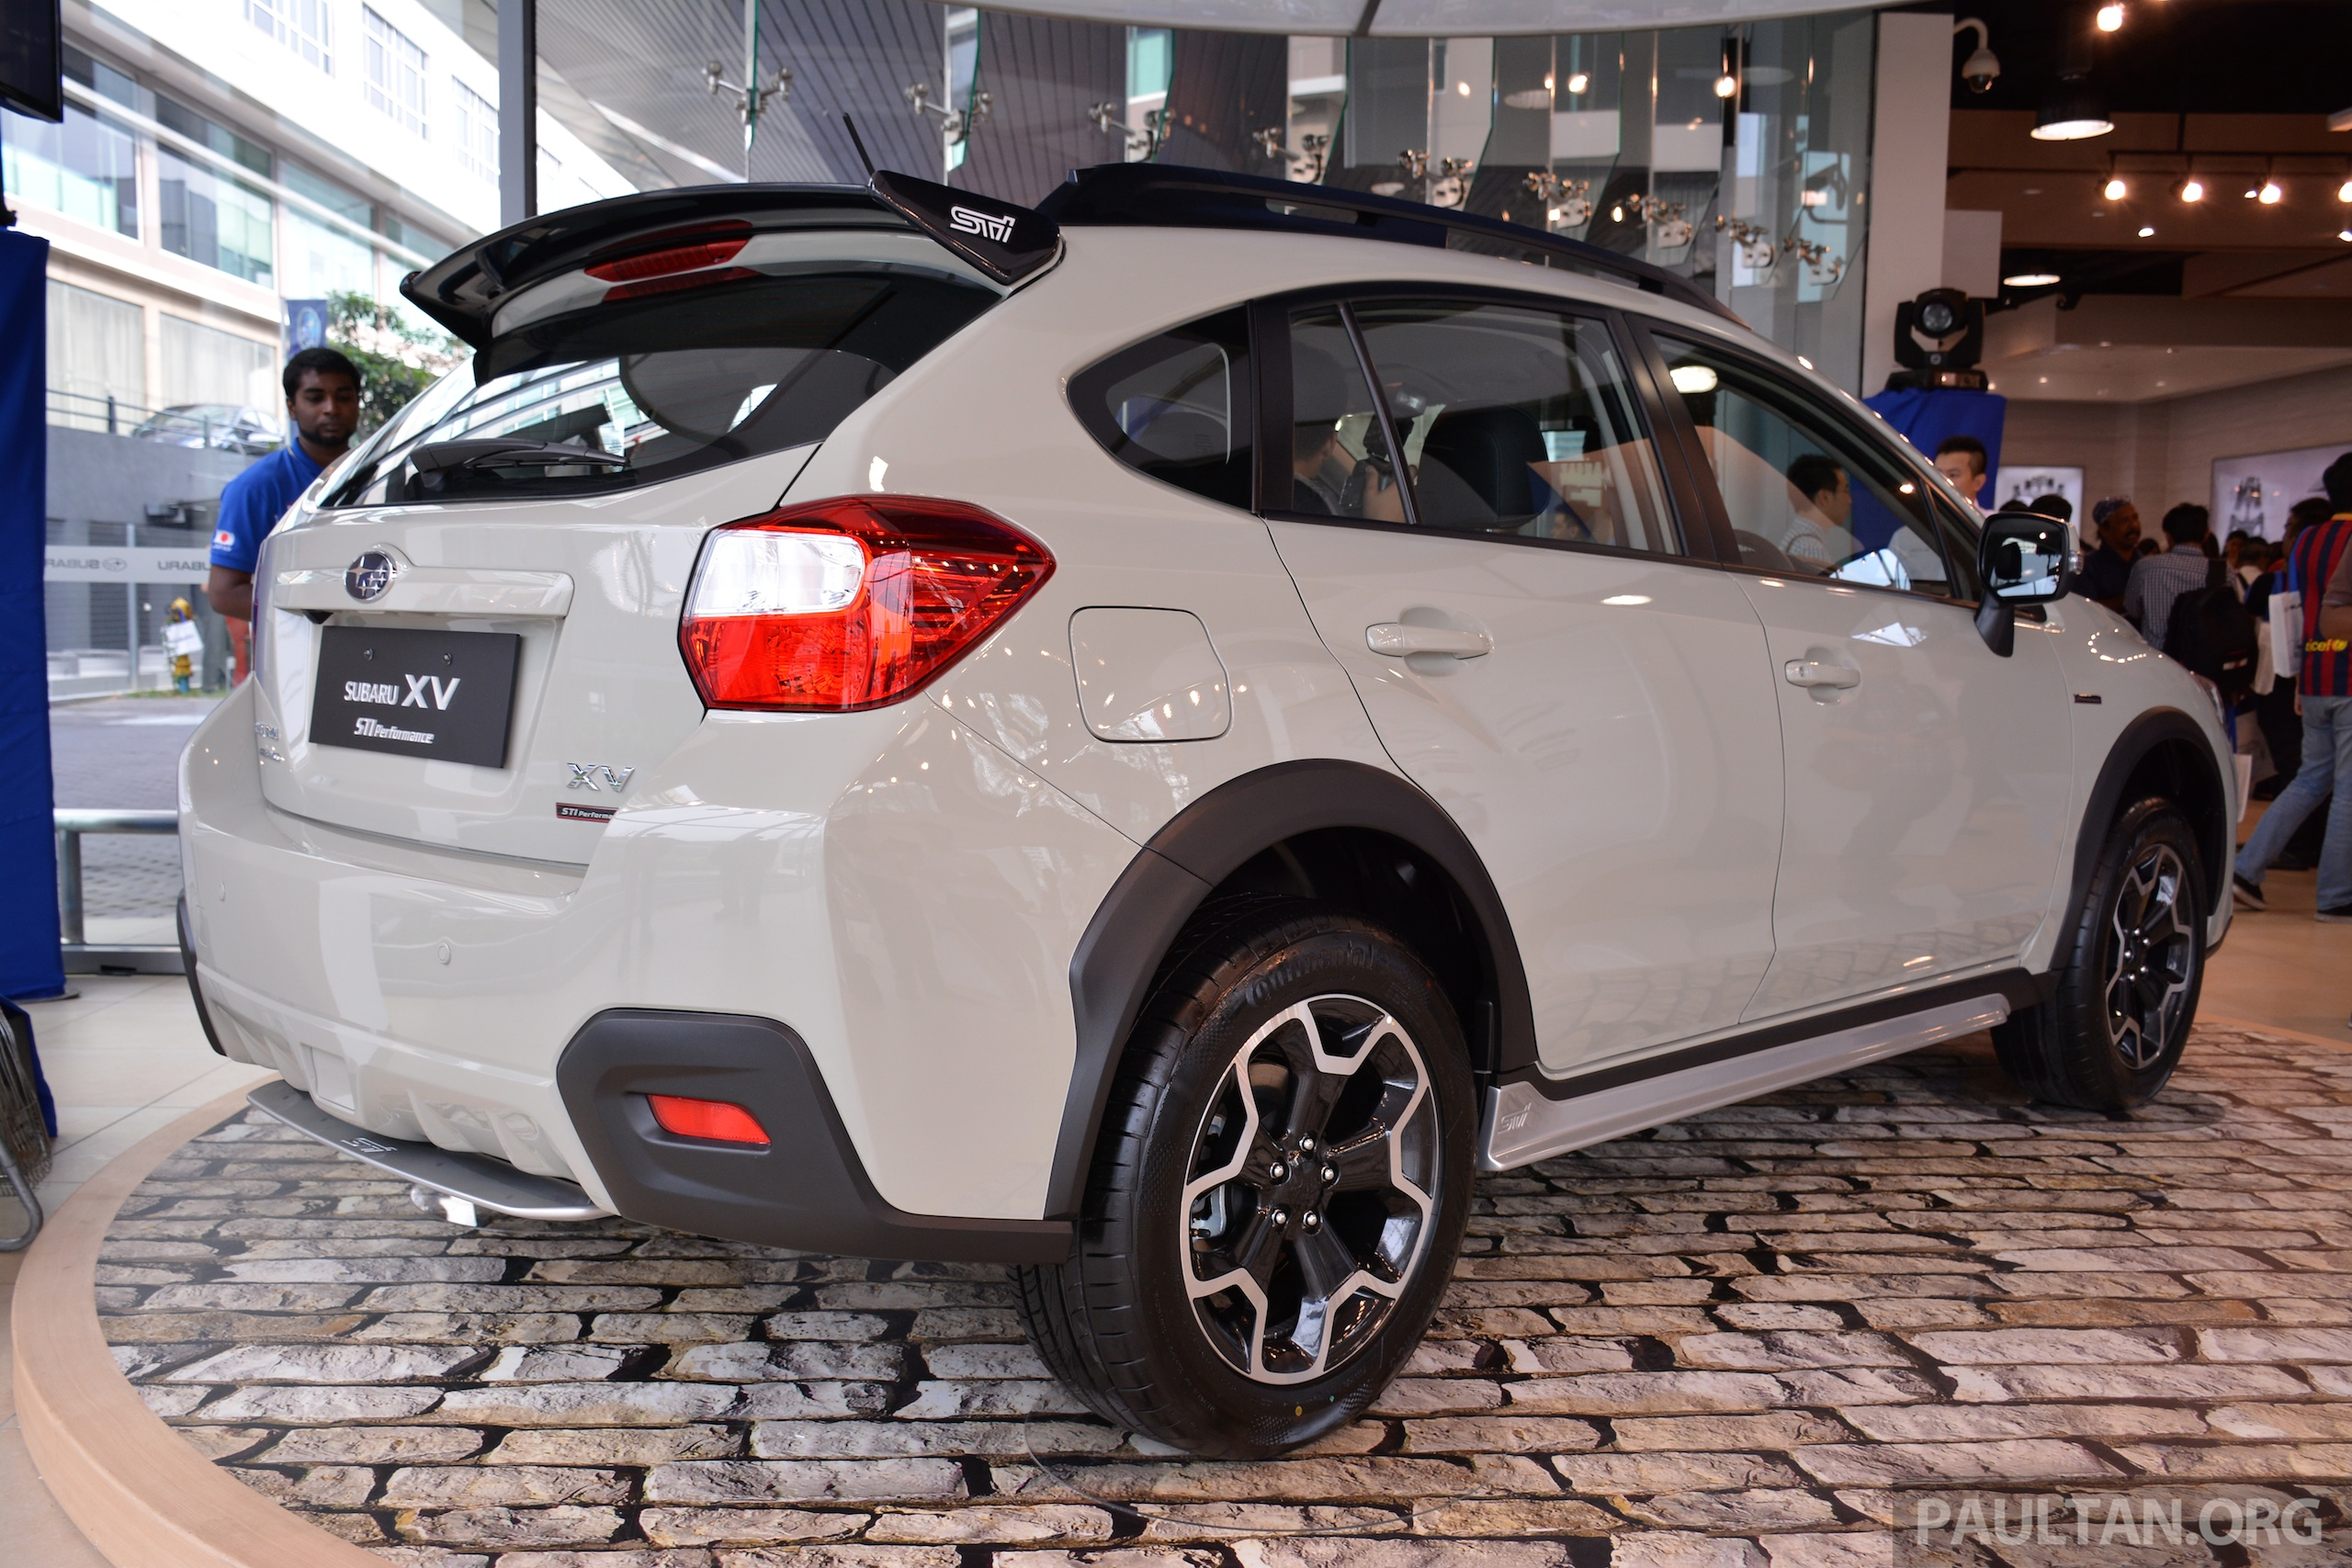 crystal black silica roof spoiler on a khaki xv how might it look club crosstrek subaru. Black Bedroom Furniture Sets. Home Design Ideas